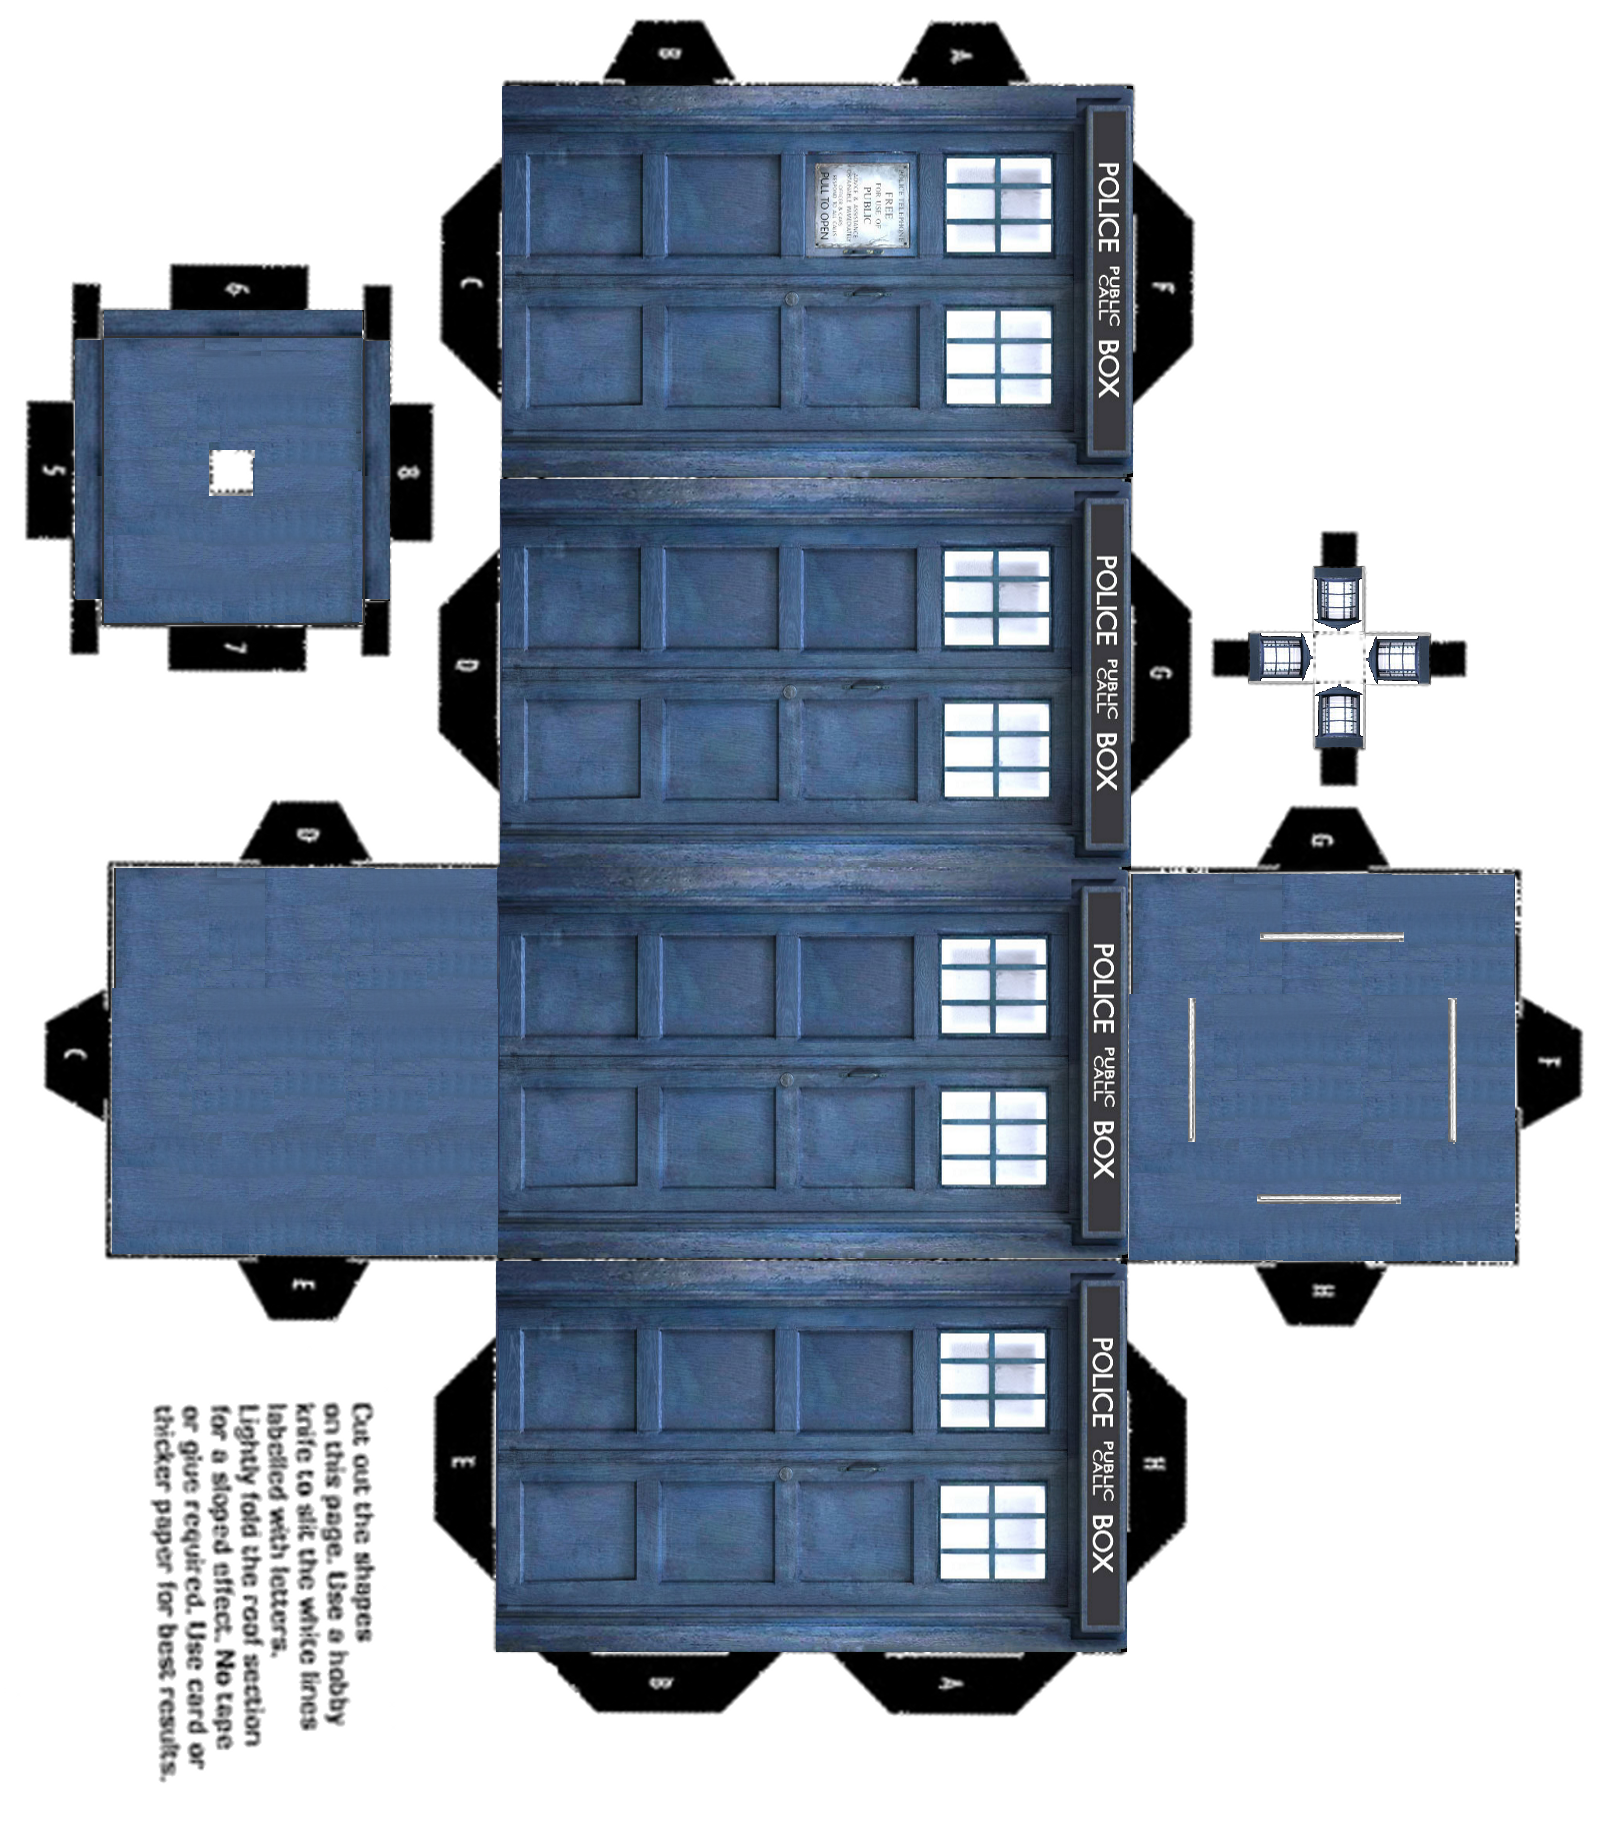 ... one at http://www.velofille.com/uploads/Printable-tardis-3d-color.png